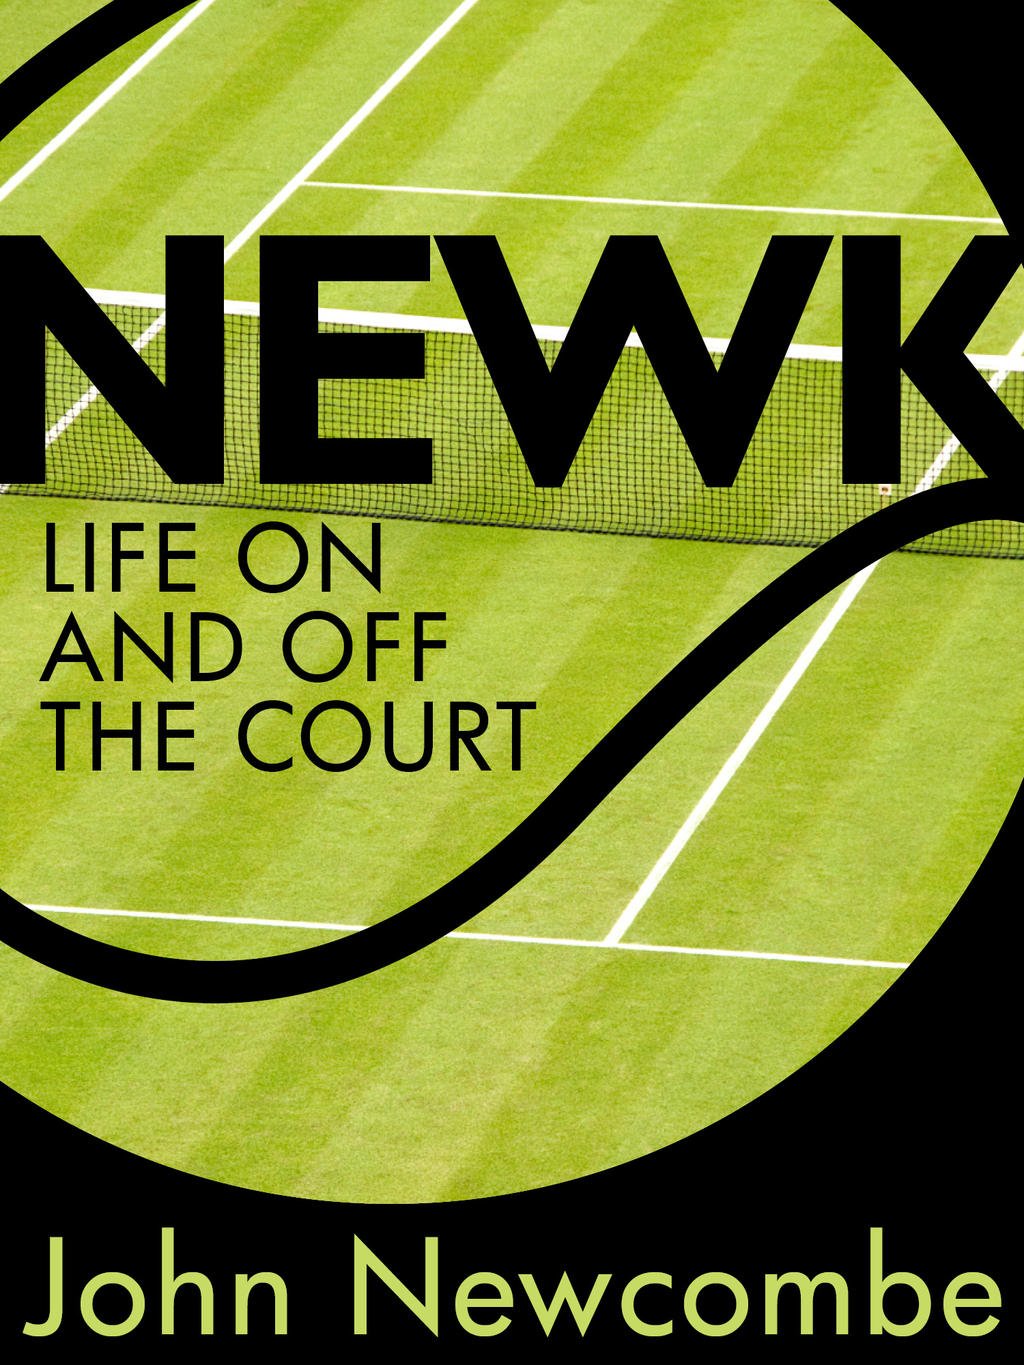 Newk: Life on and off the court